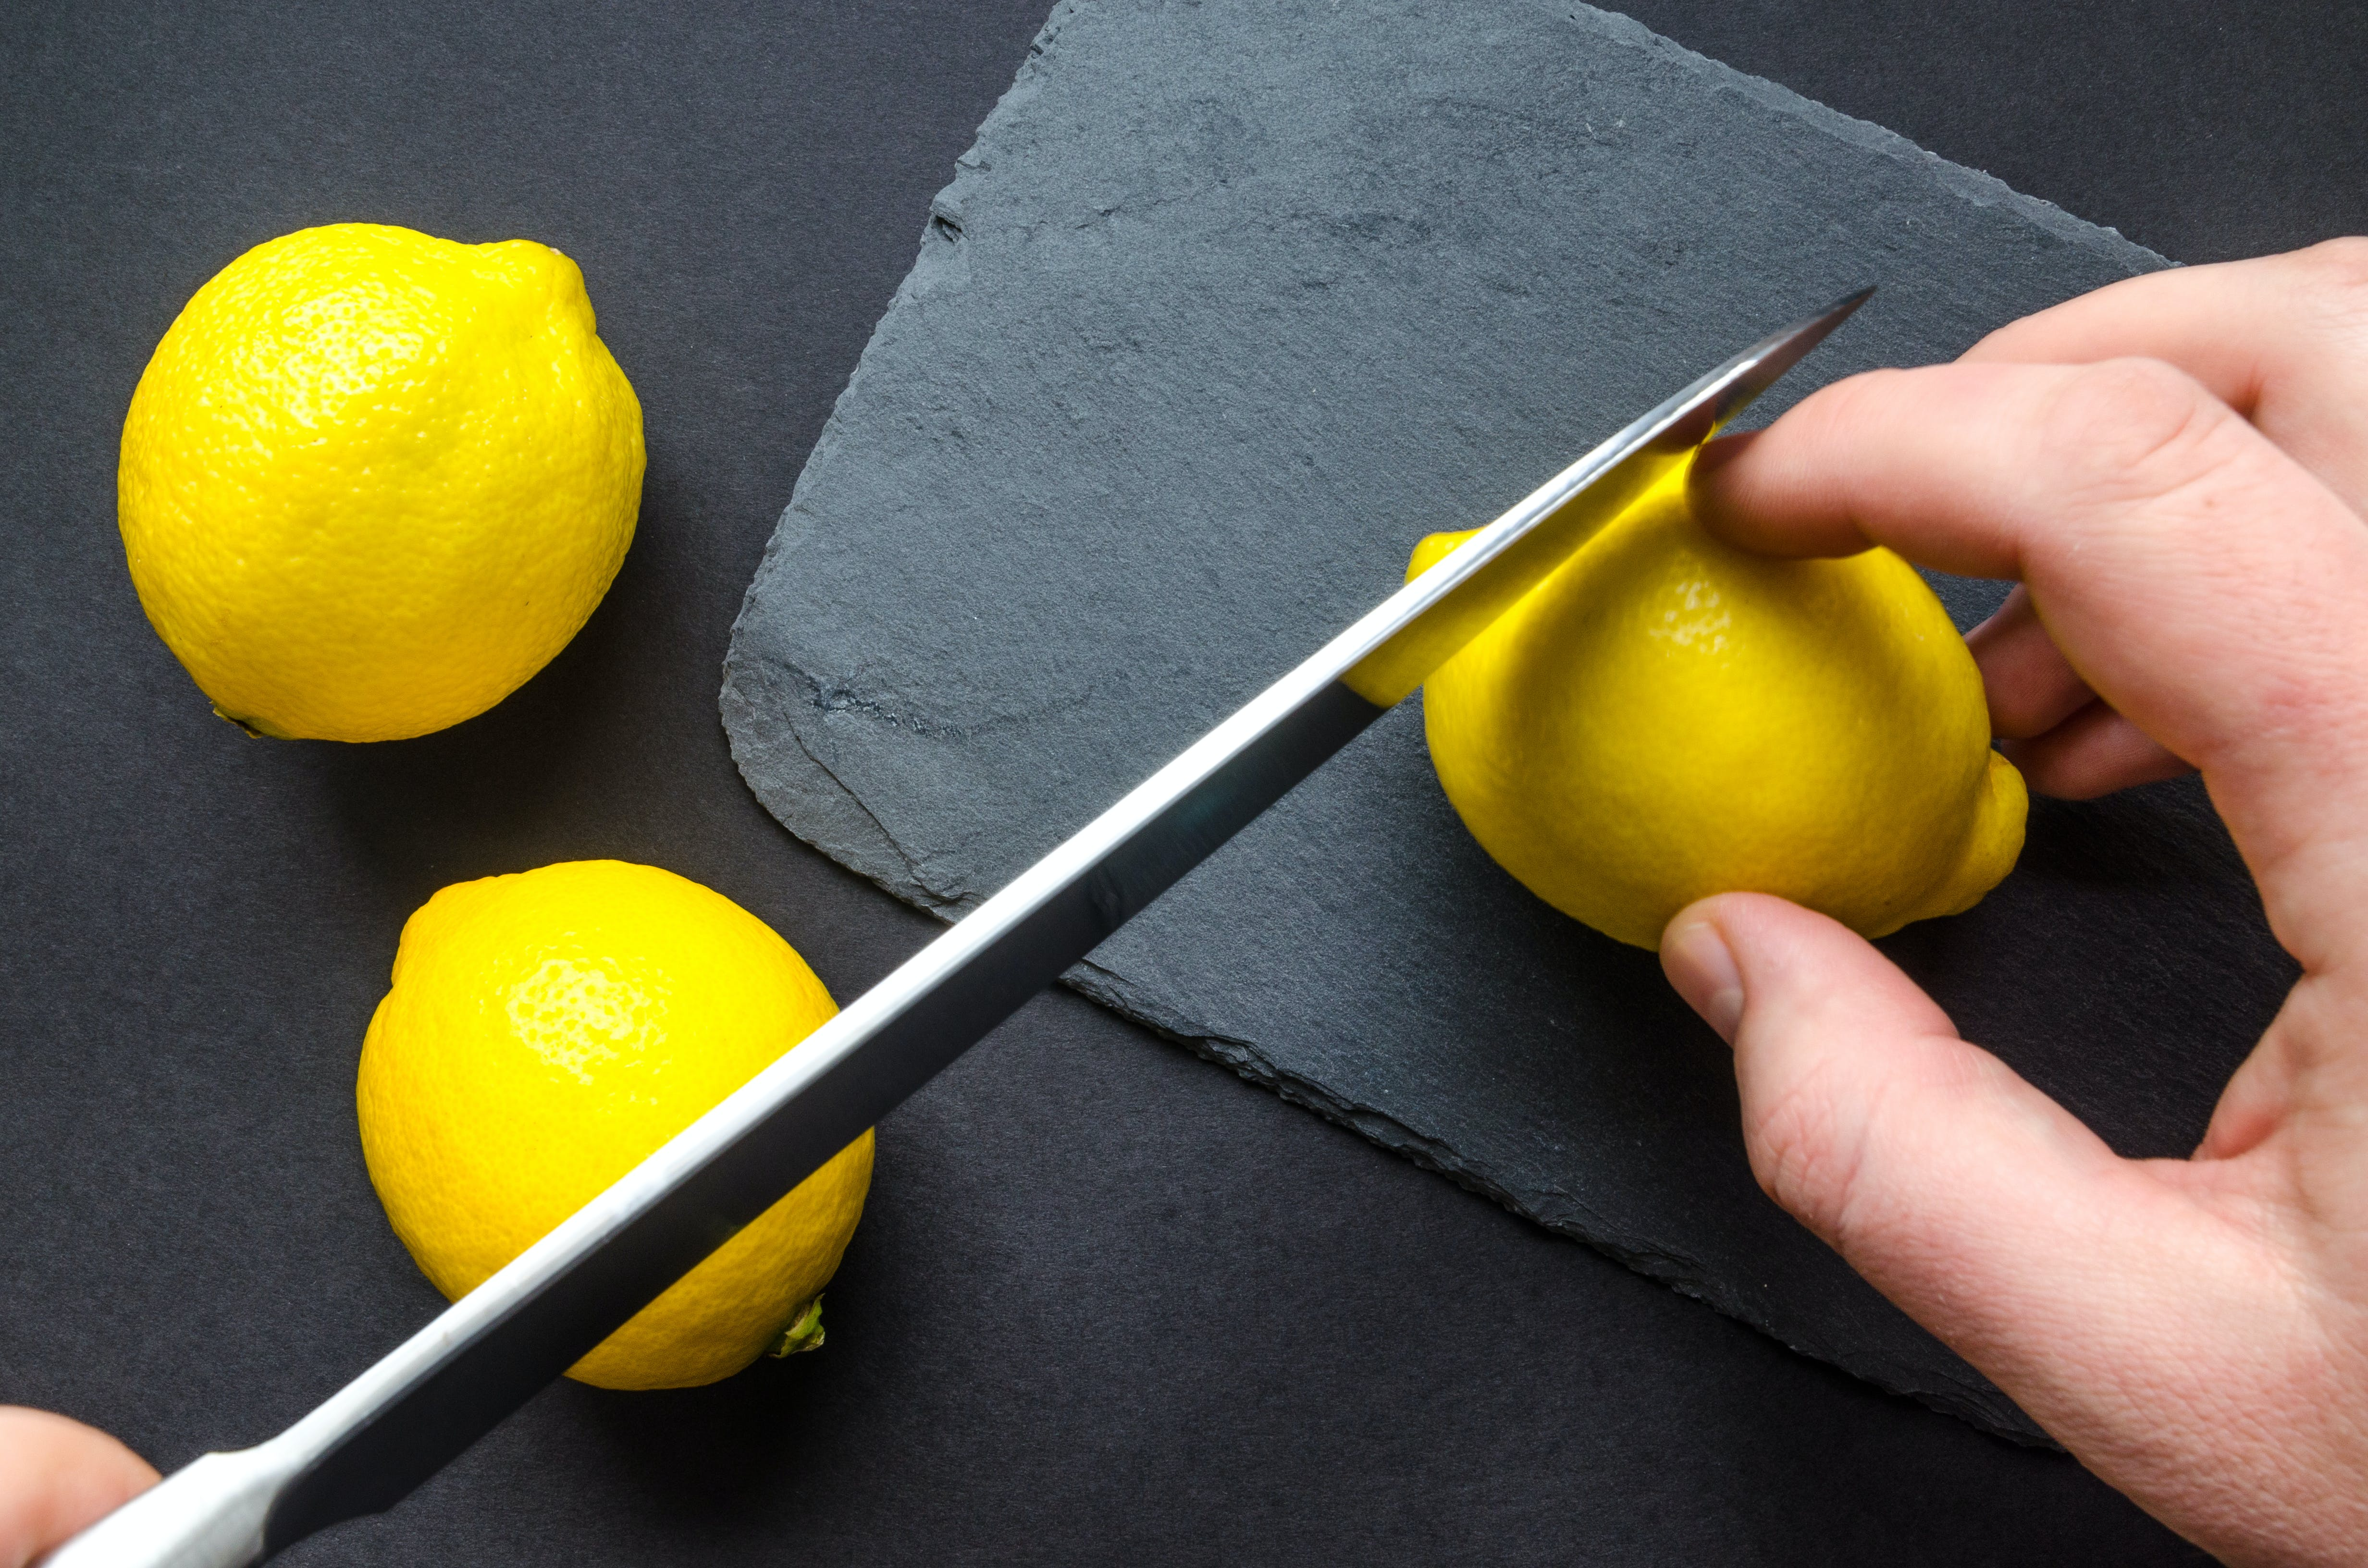 Human Slicing Yellow Lemon